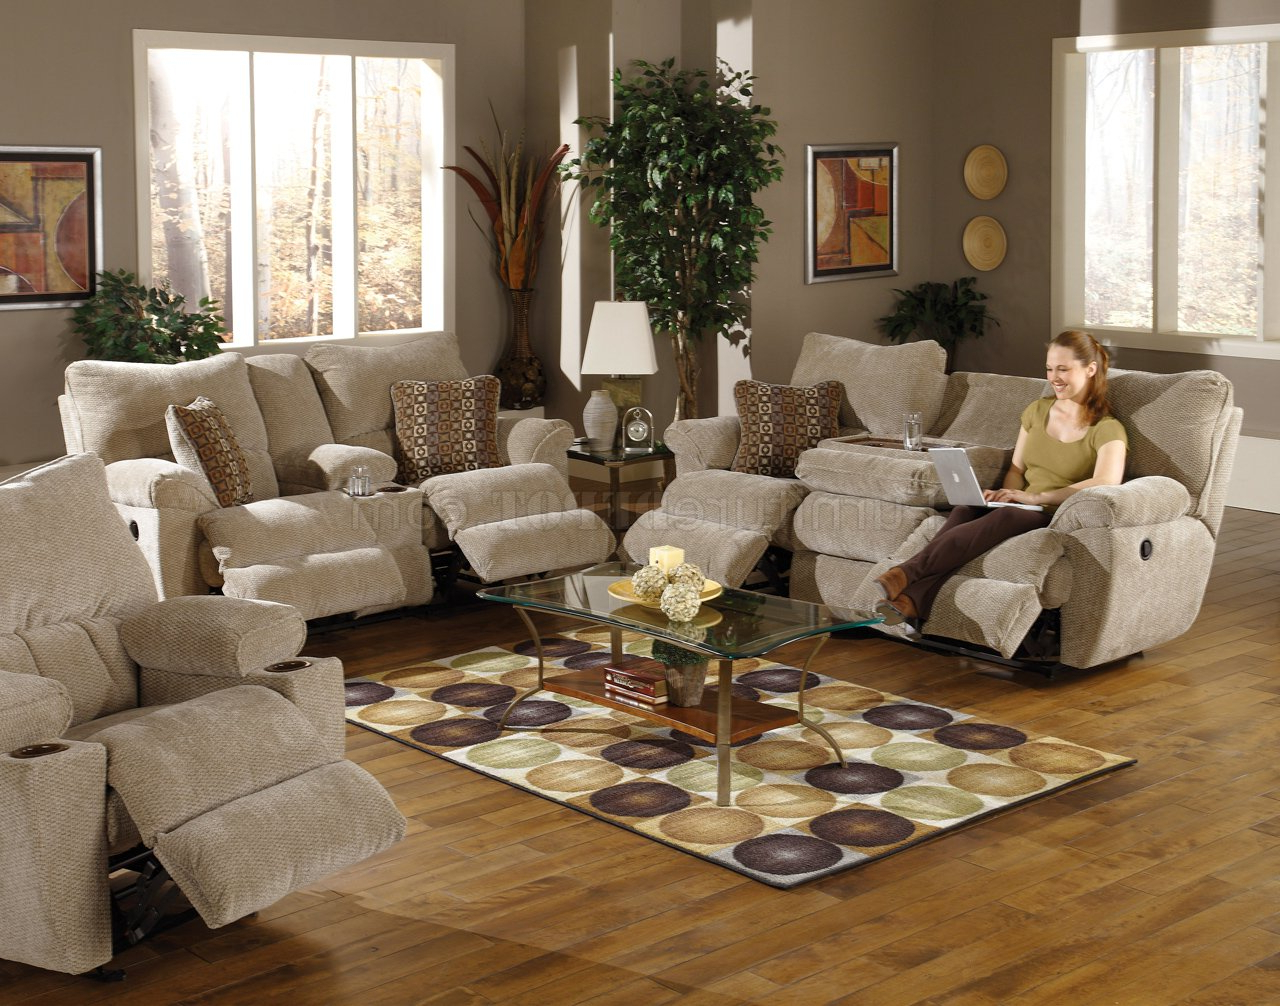 2018 Sofa Loveseat And Chairs Inside Sable/earth Fabric Madison Reclining Sofa & Loveseat Set (Gallery 15 of 20)